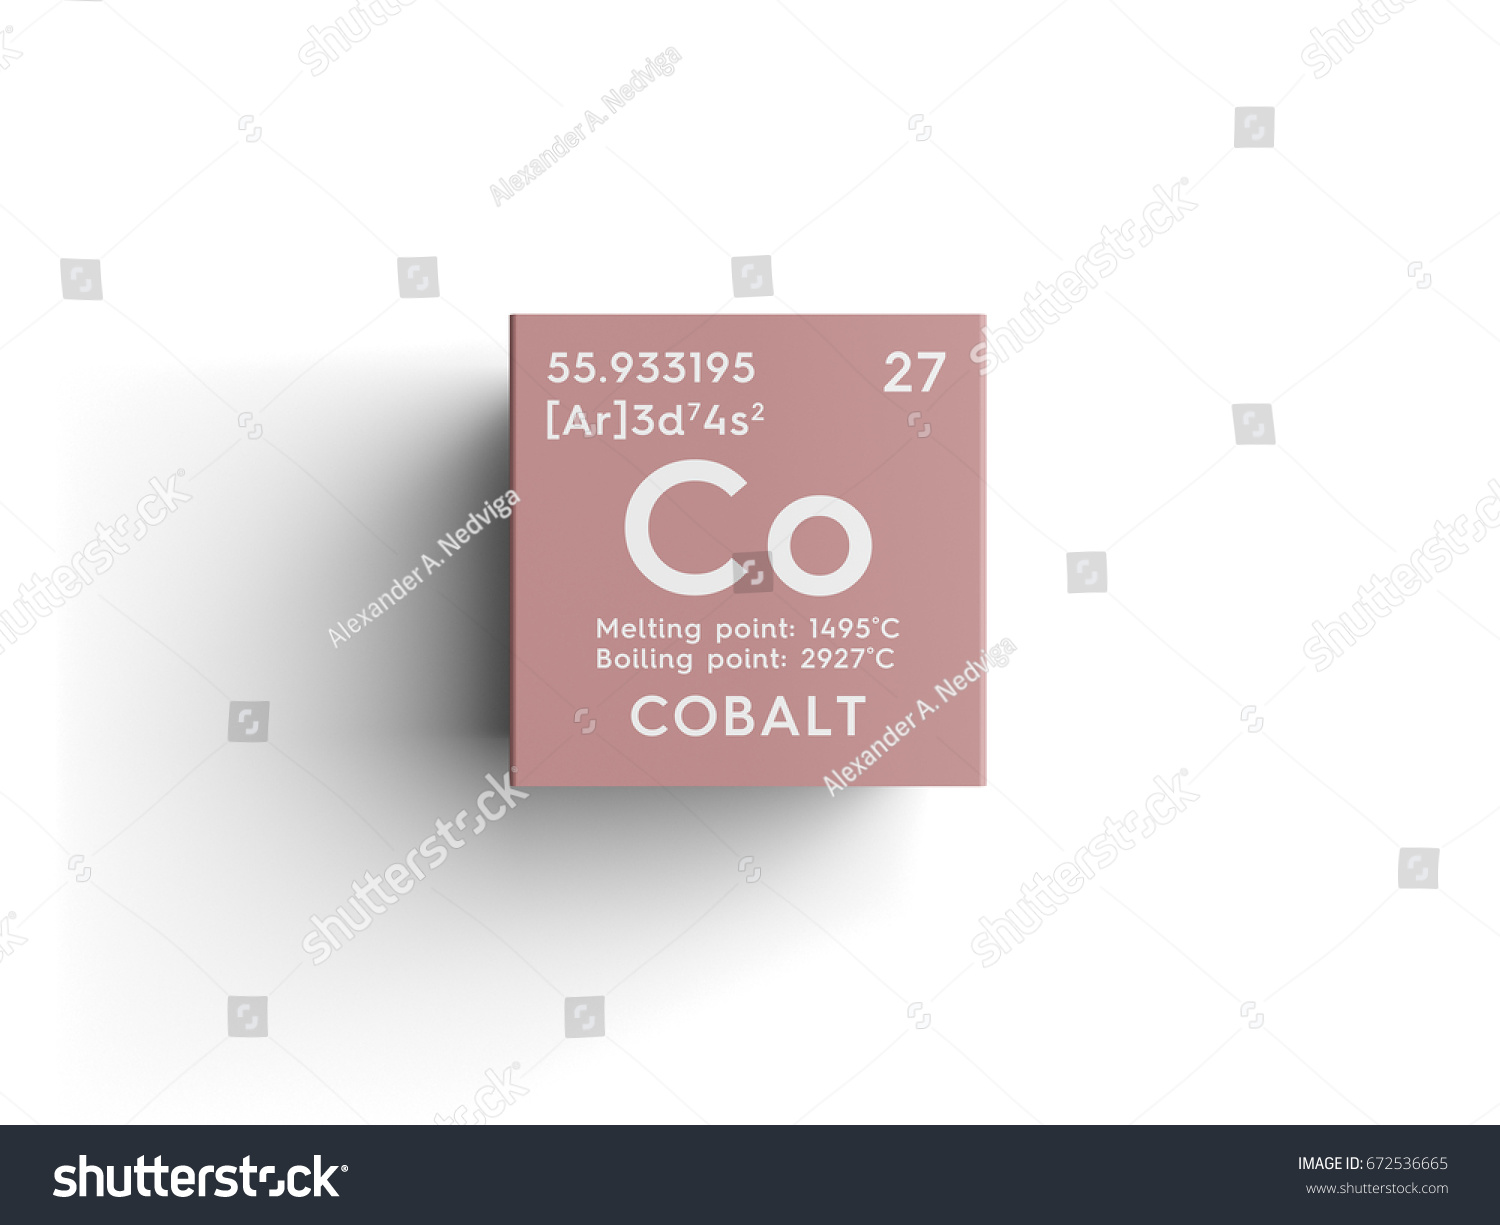 Cobalt transition metals chemical element mendeleevs stock cobalt transition metals chemical element of mendeleevs periodic table cobalt in square cube gamestrikefo Image collections